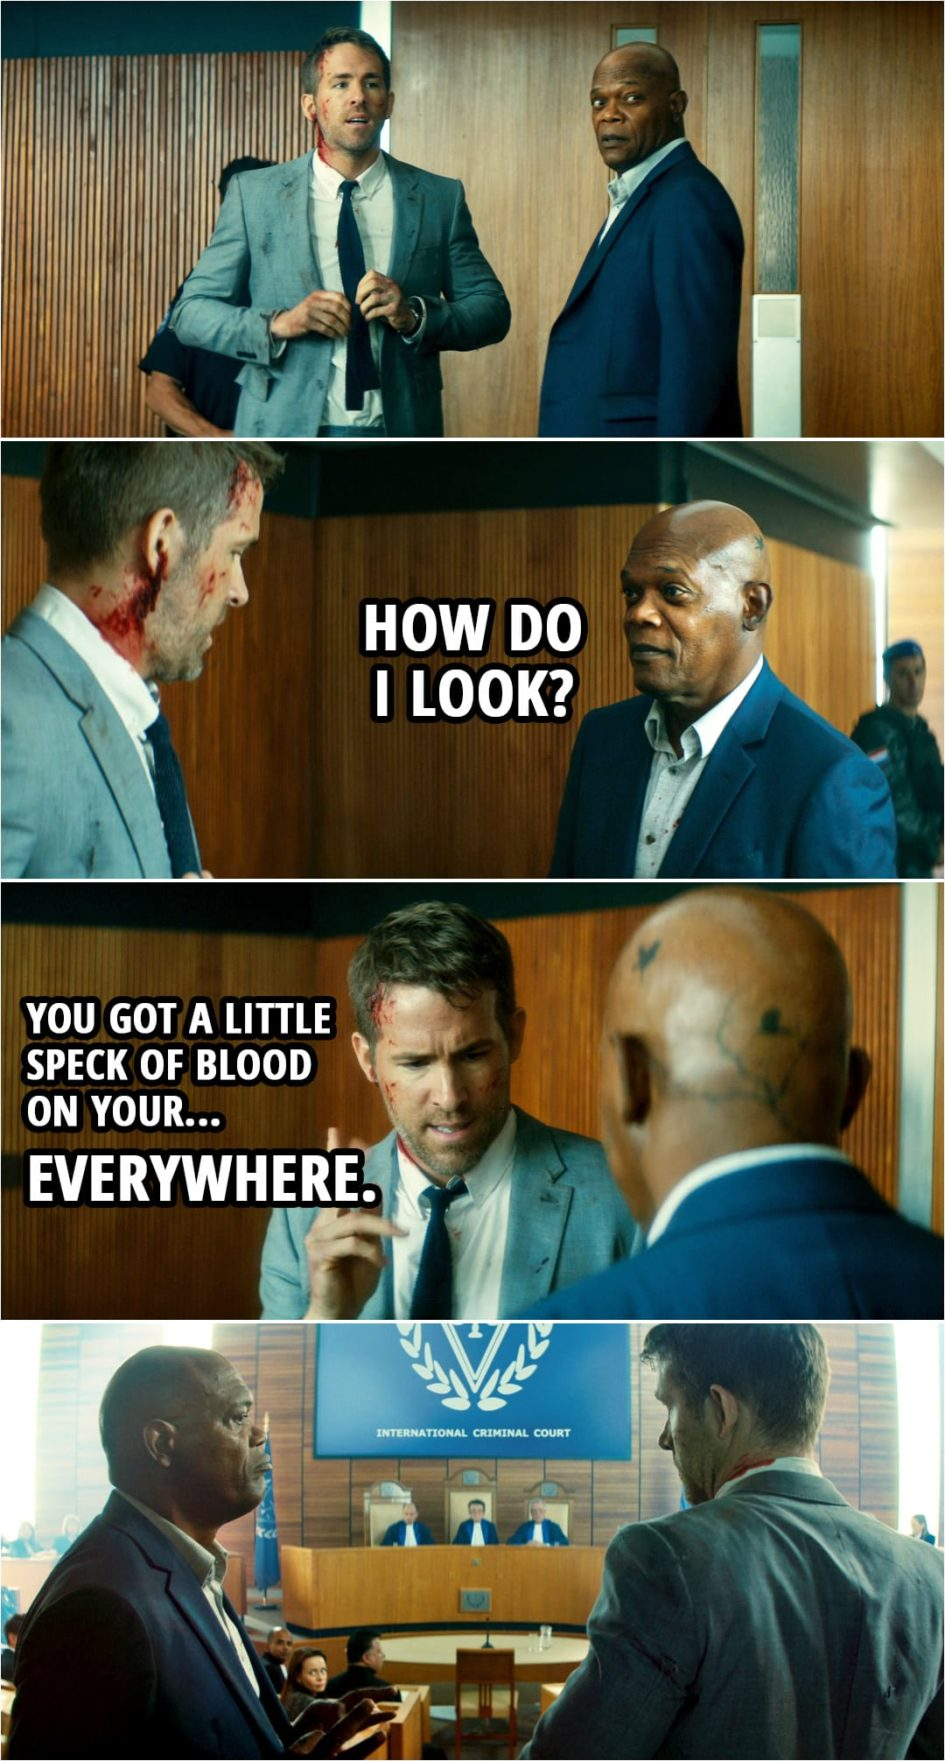 Quote from The Hitman's Bodyguard (2017)   (After they finally arrive at the court...) Darius Kincaid: How do I look? Michael Bryce: You got a little speck of blood on your... everywhere.